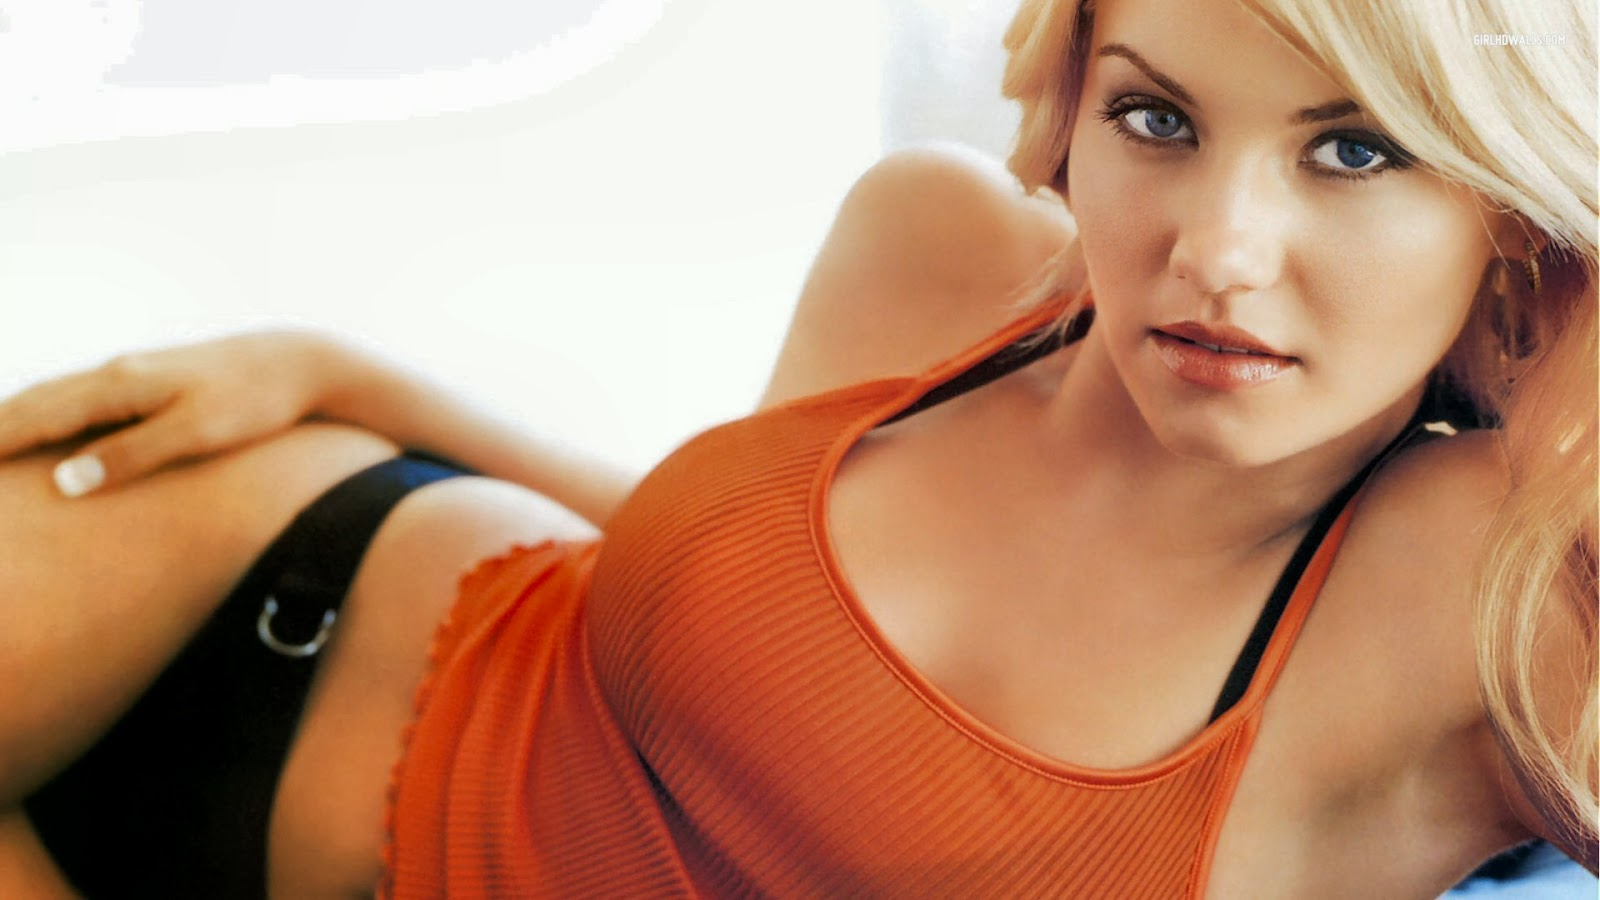 image Kate winslet nude bush and boobs in jude scandalplanetcom